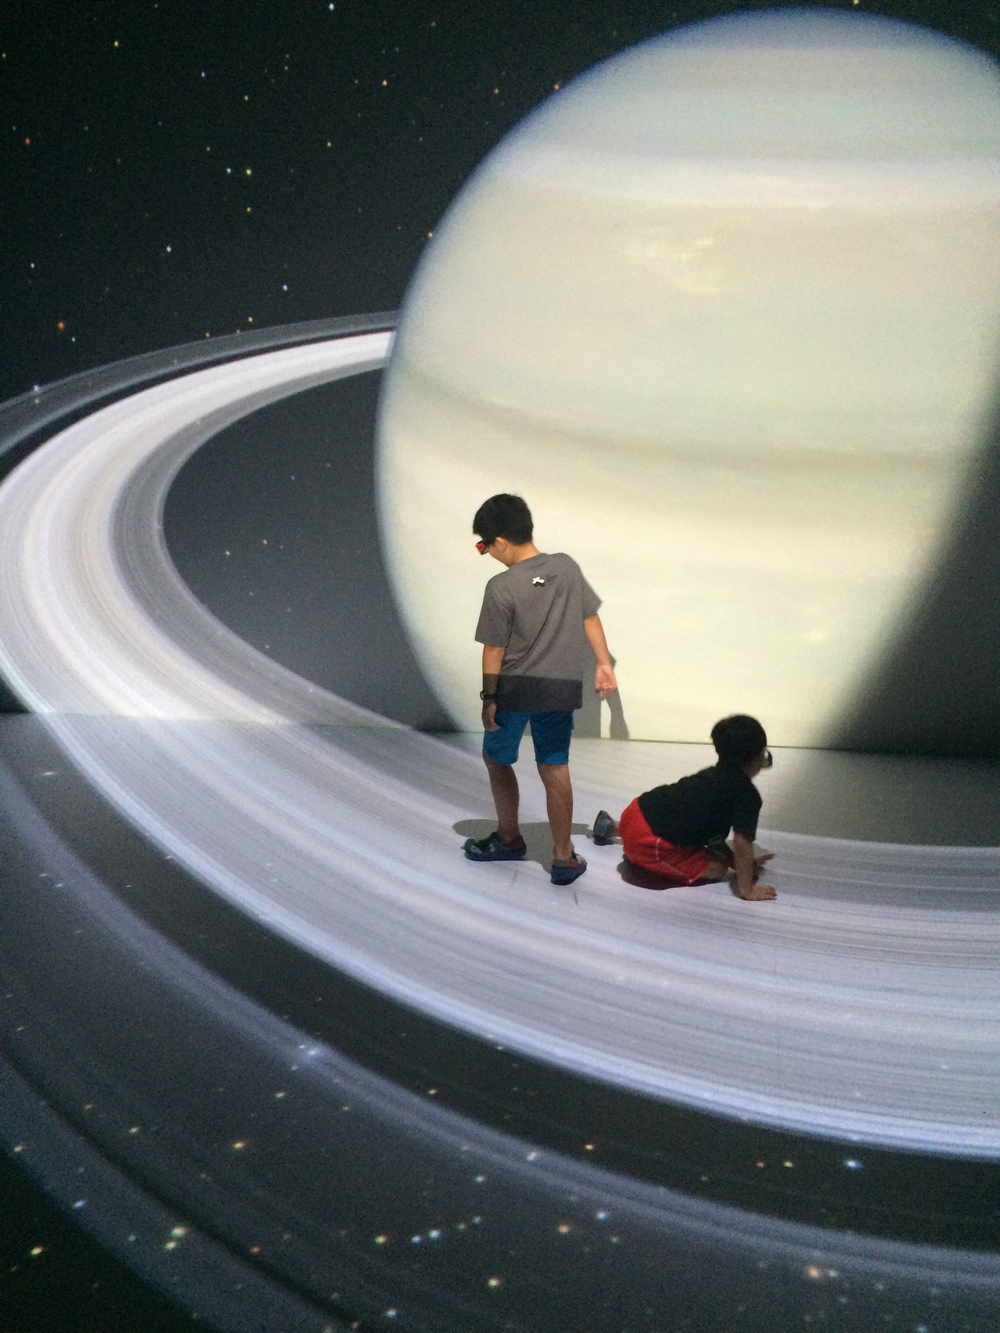 Deep Space - The 3D Show where you are invited to roam around the multi-dimensional space.